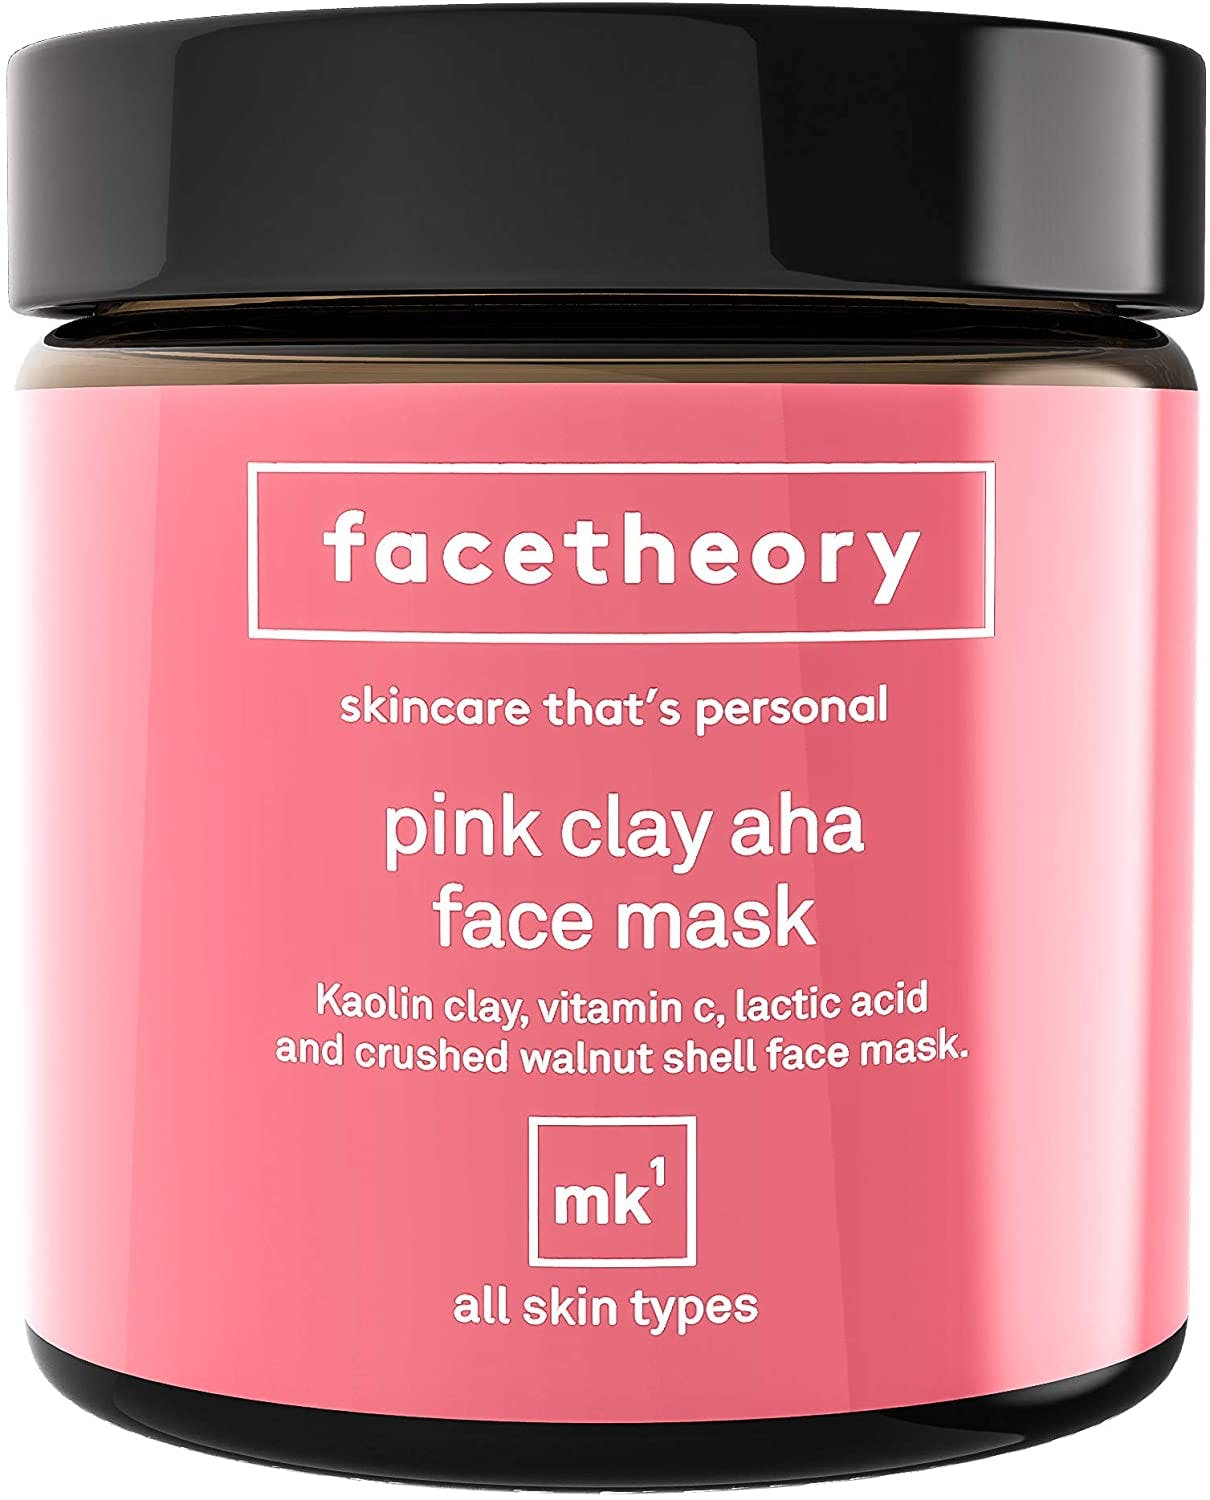 Face Theory mask in jar